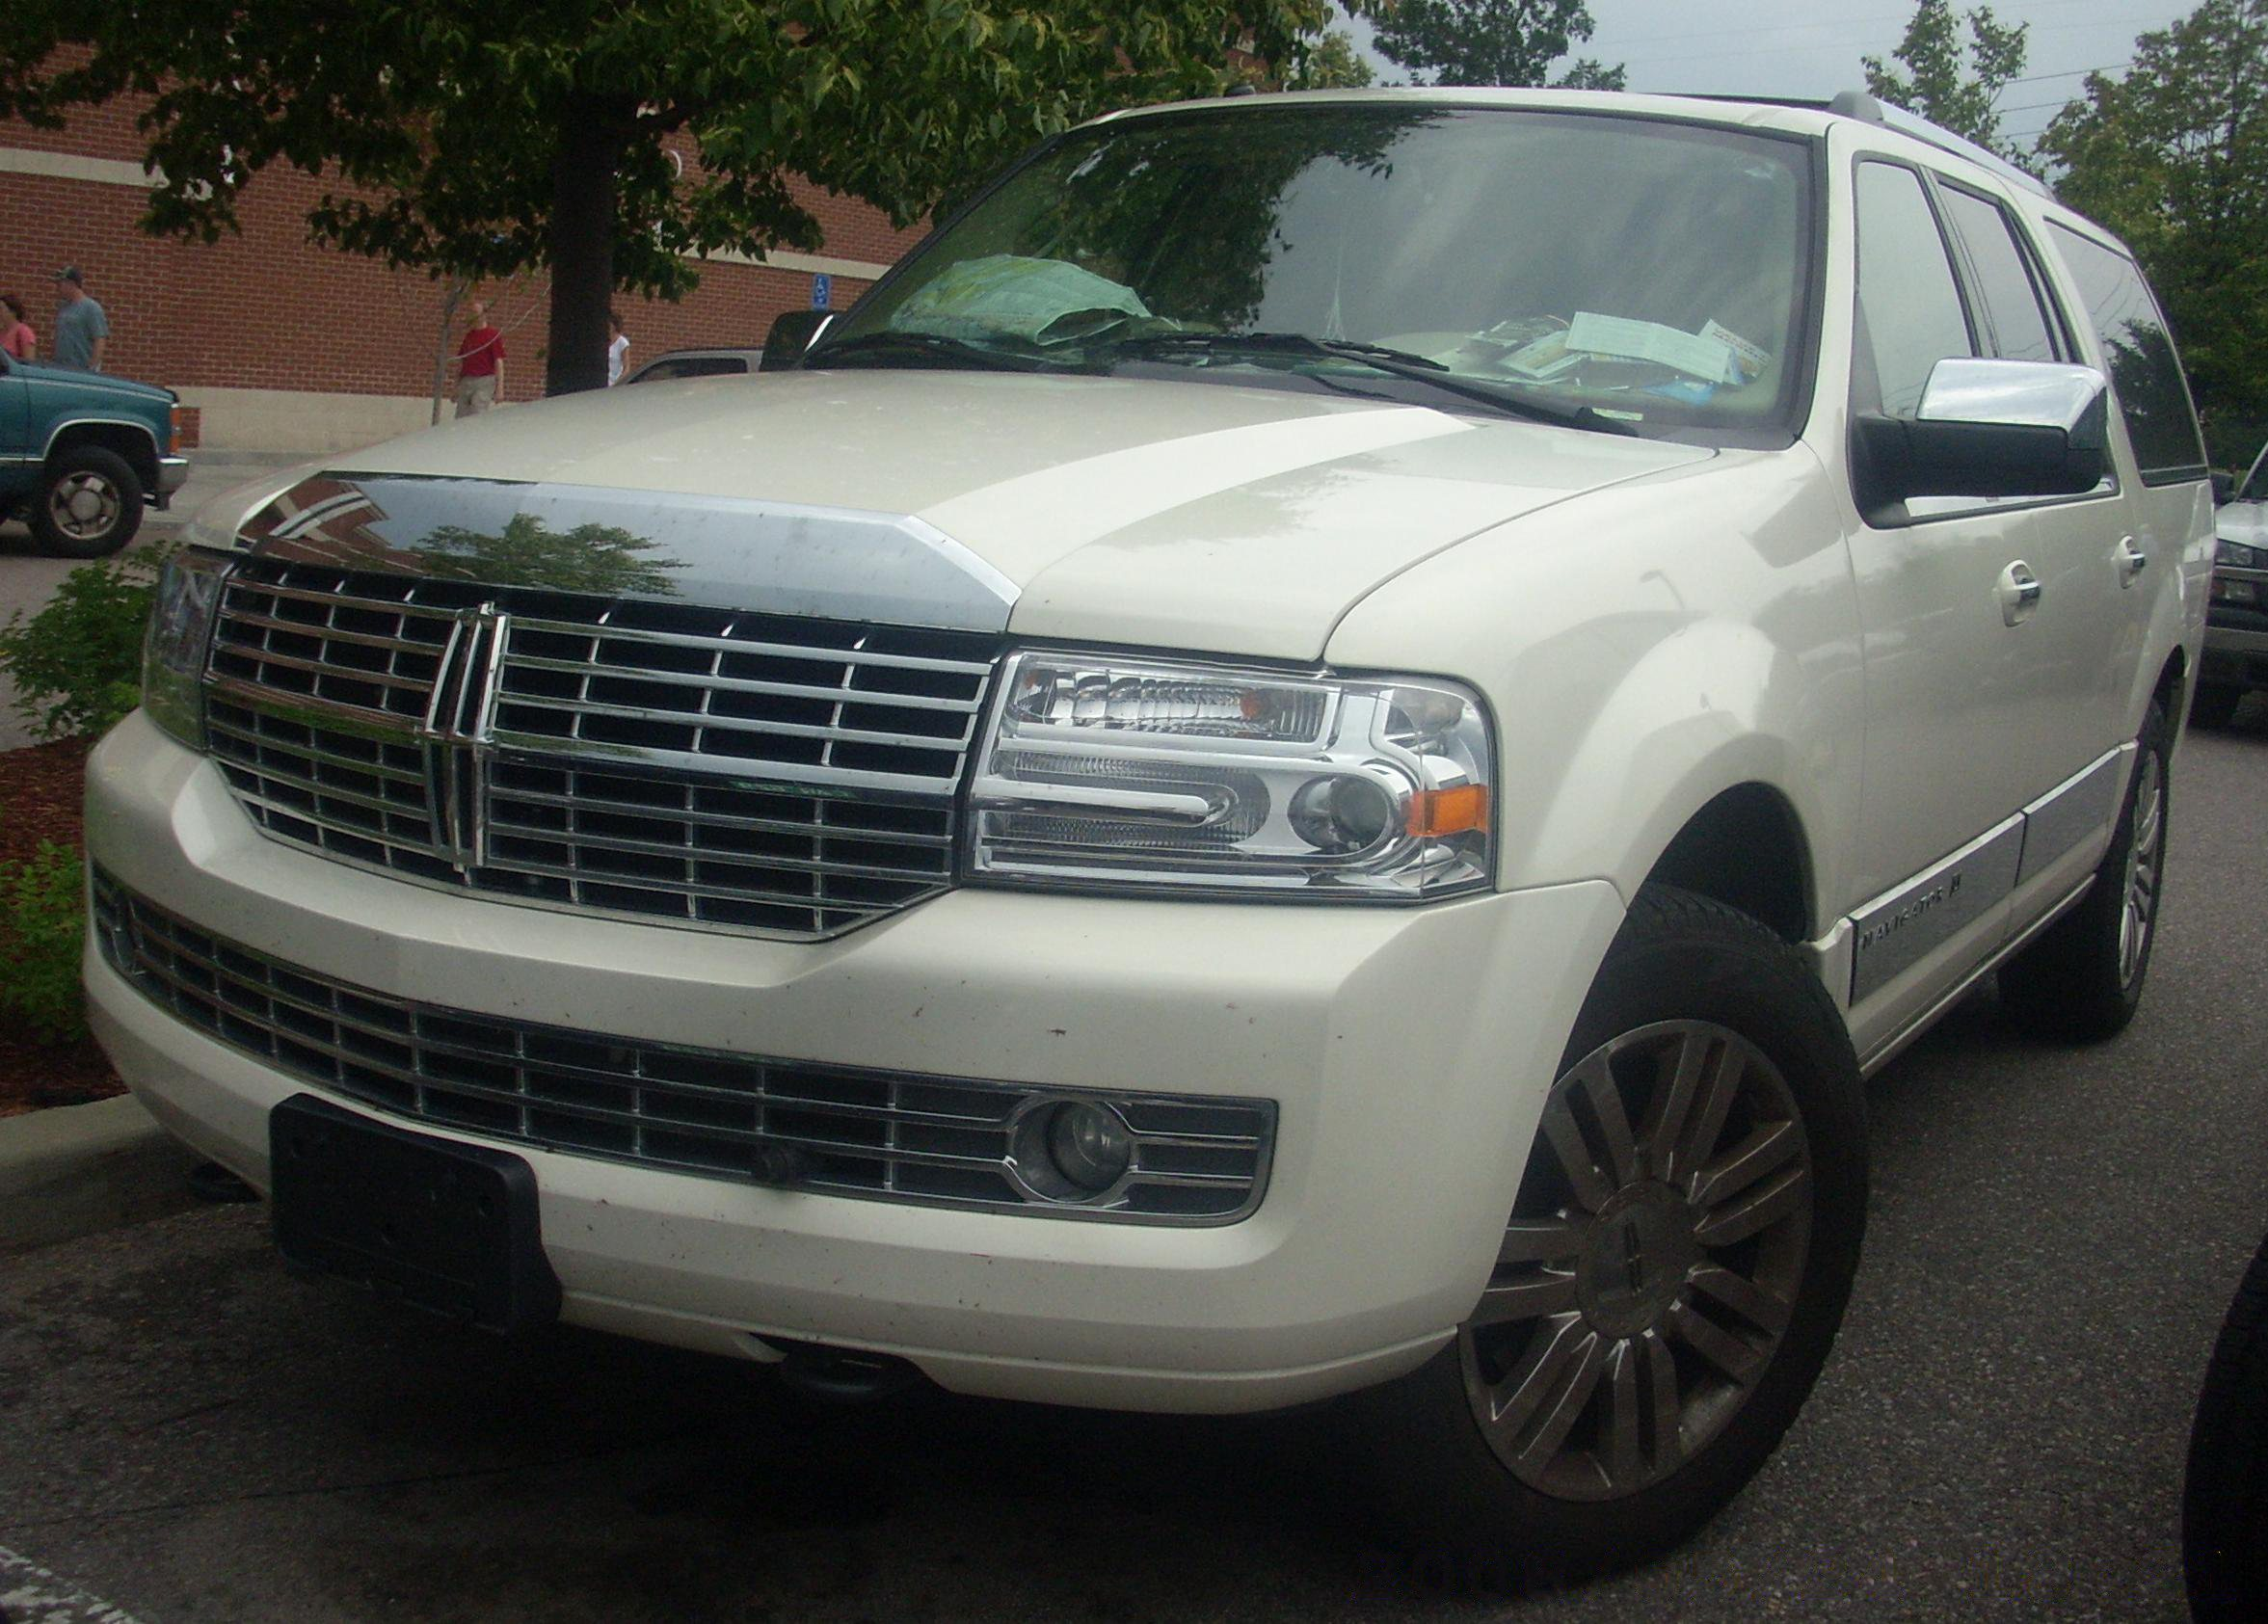 Home » Release Date For 2014 Lincoln Navigator